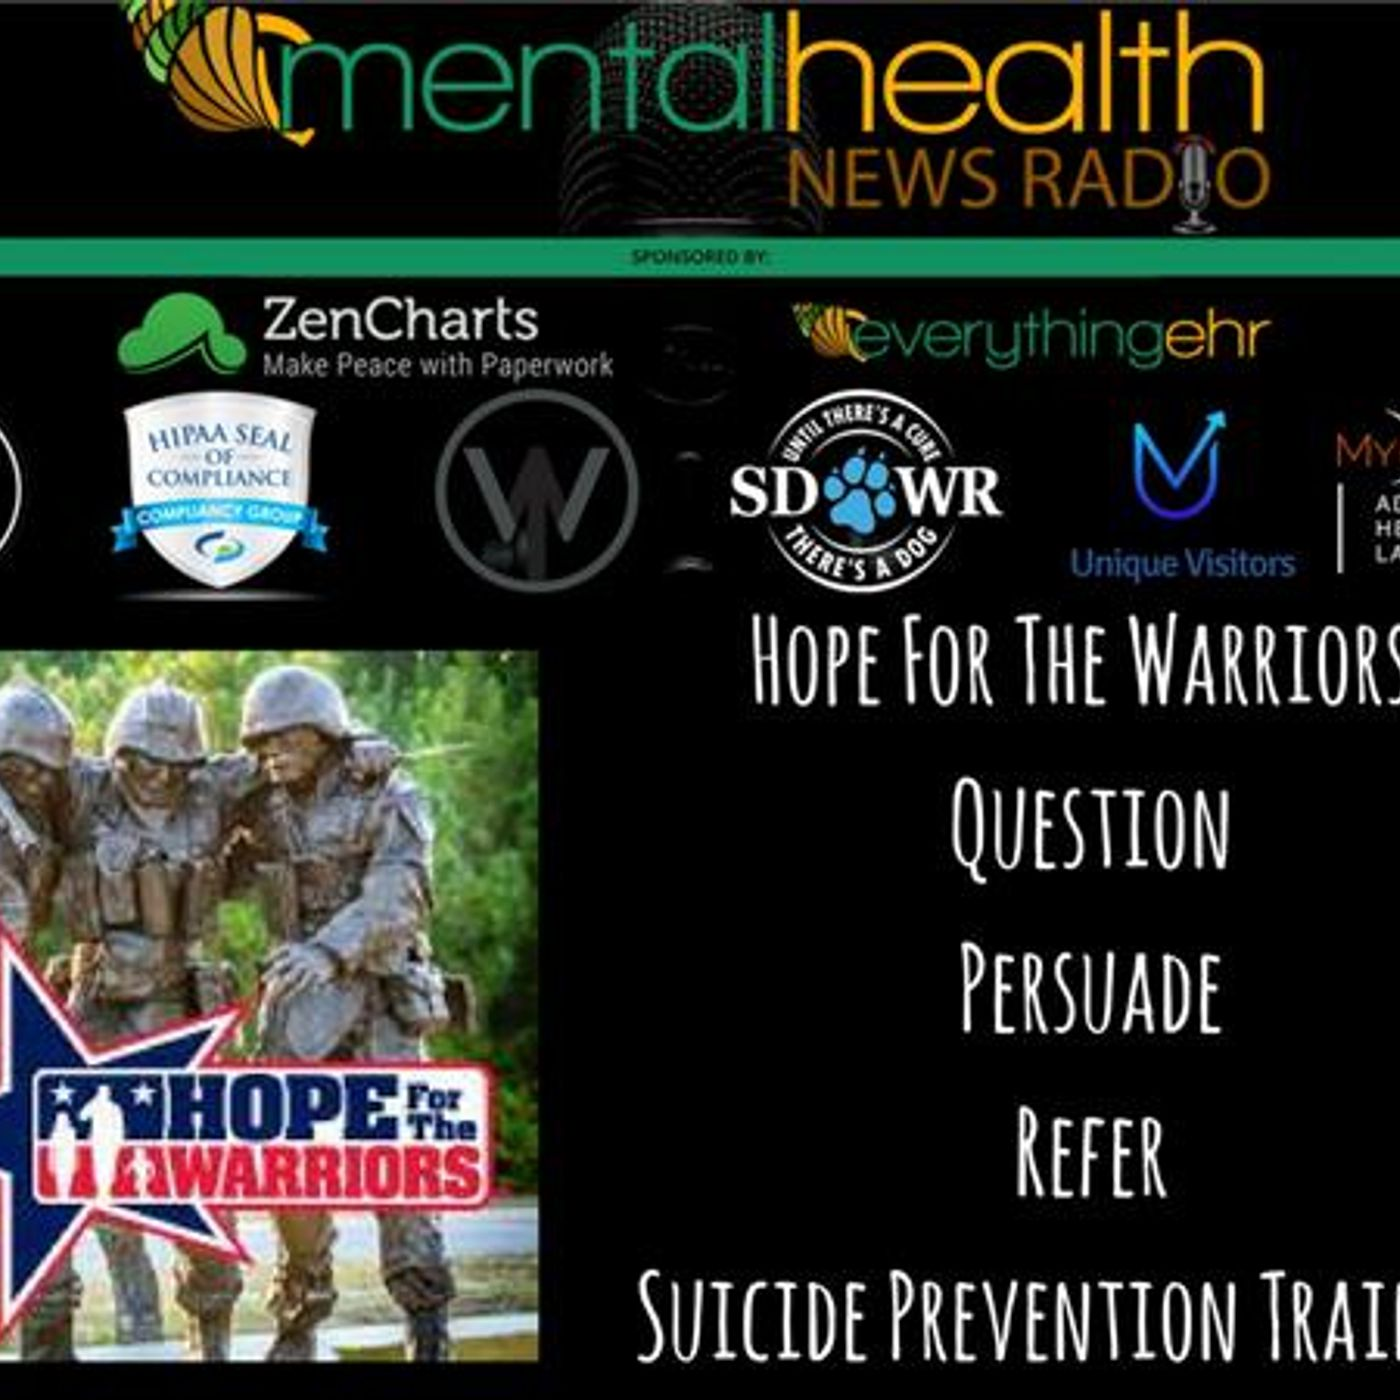 Mental Health News Radio - Hope For The Warriors: Question, Persuade, Refer Suicide Prevention Training